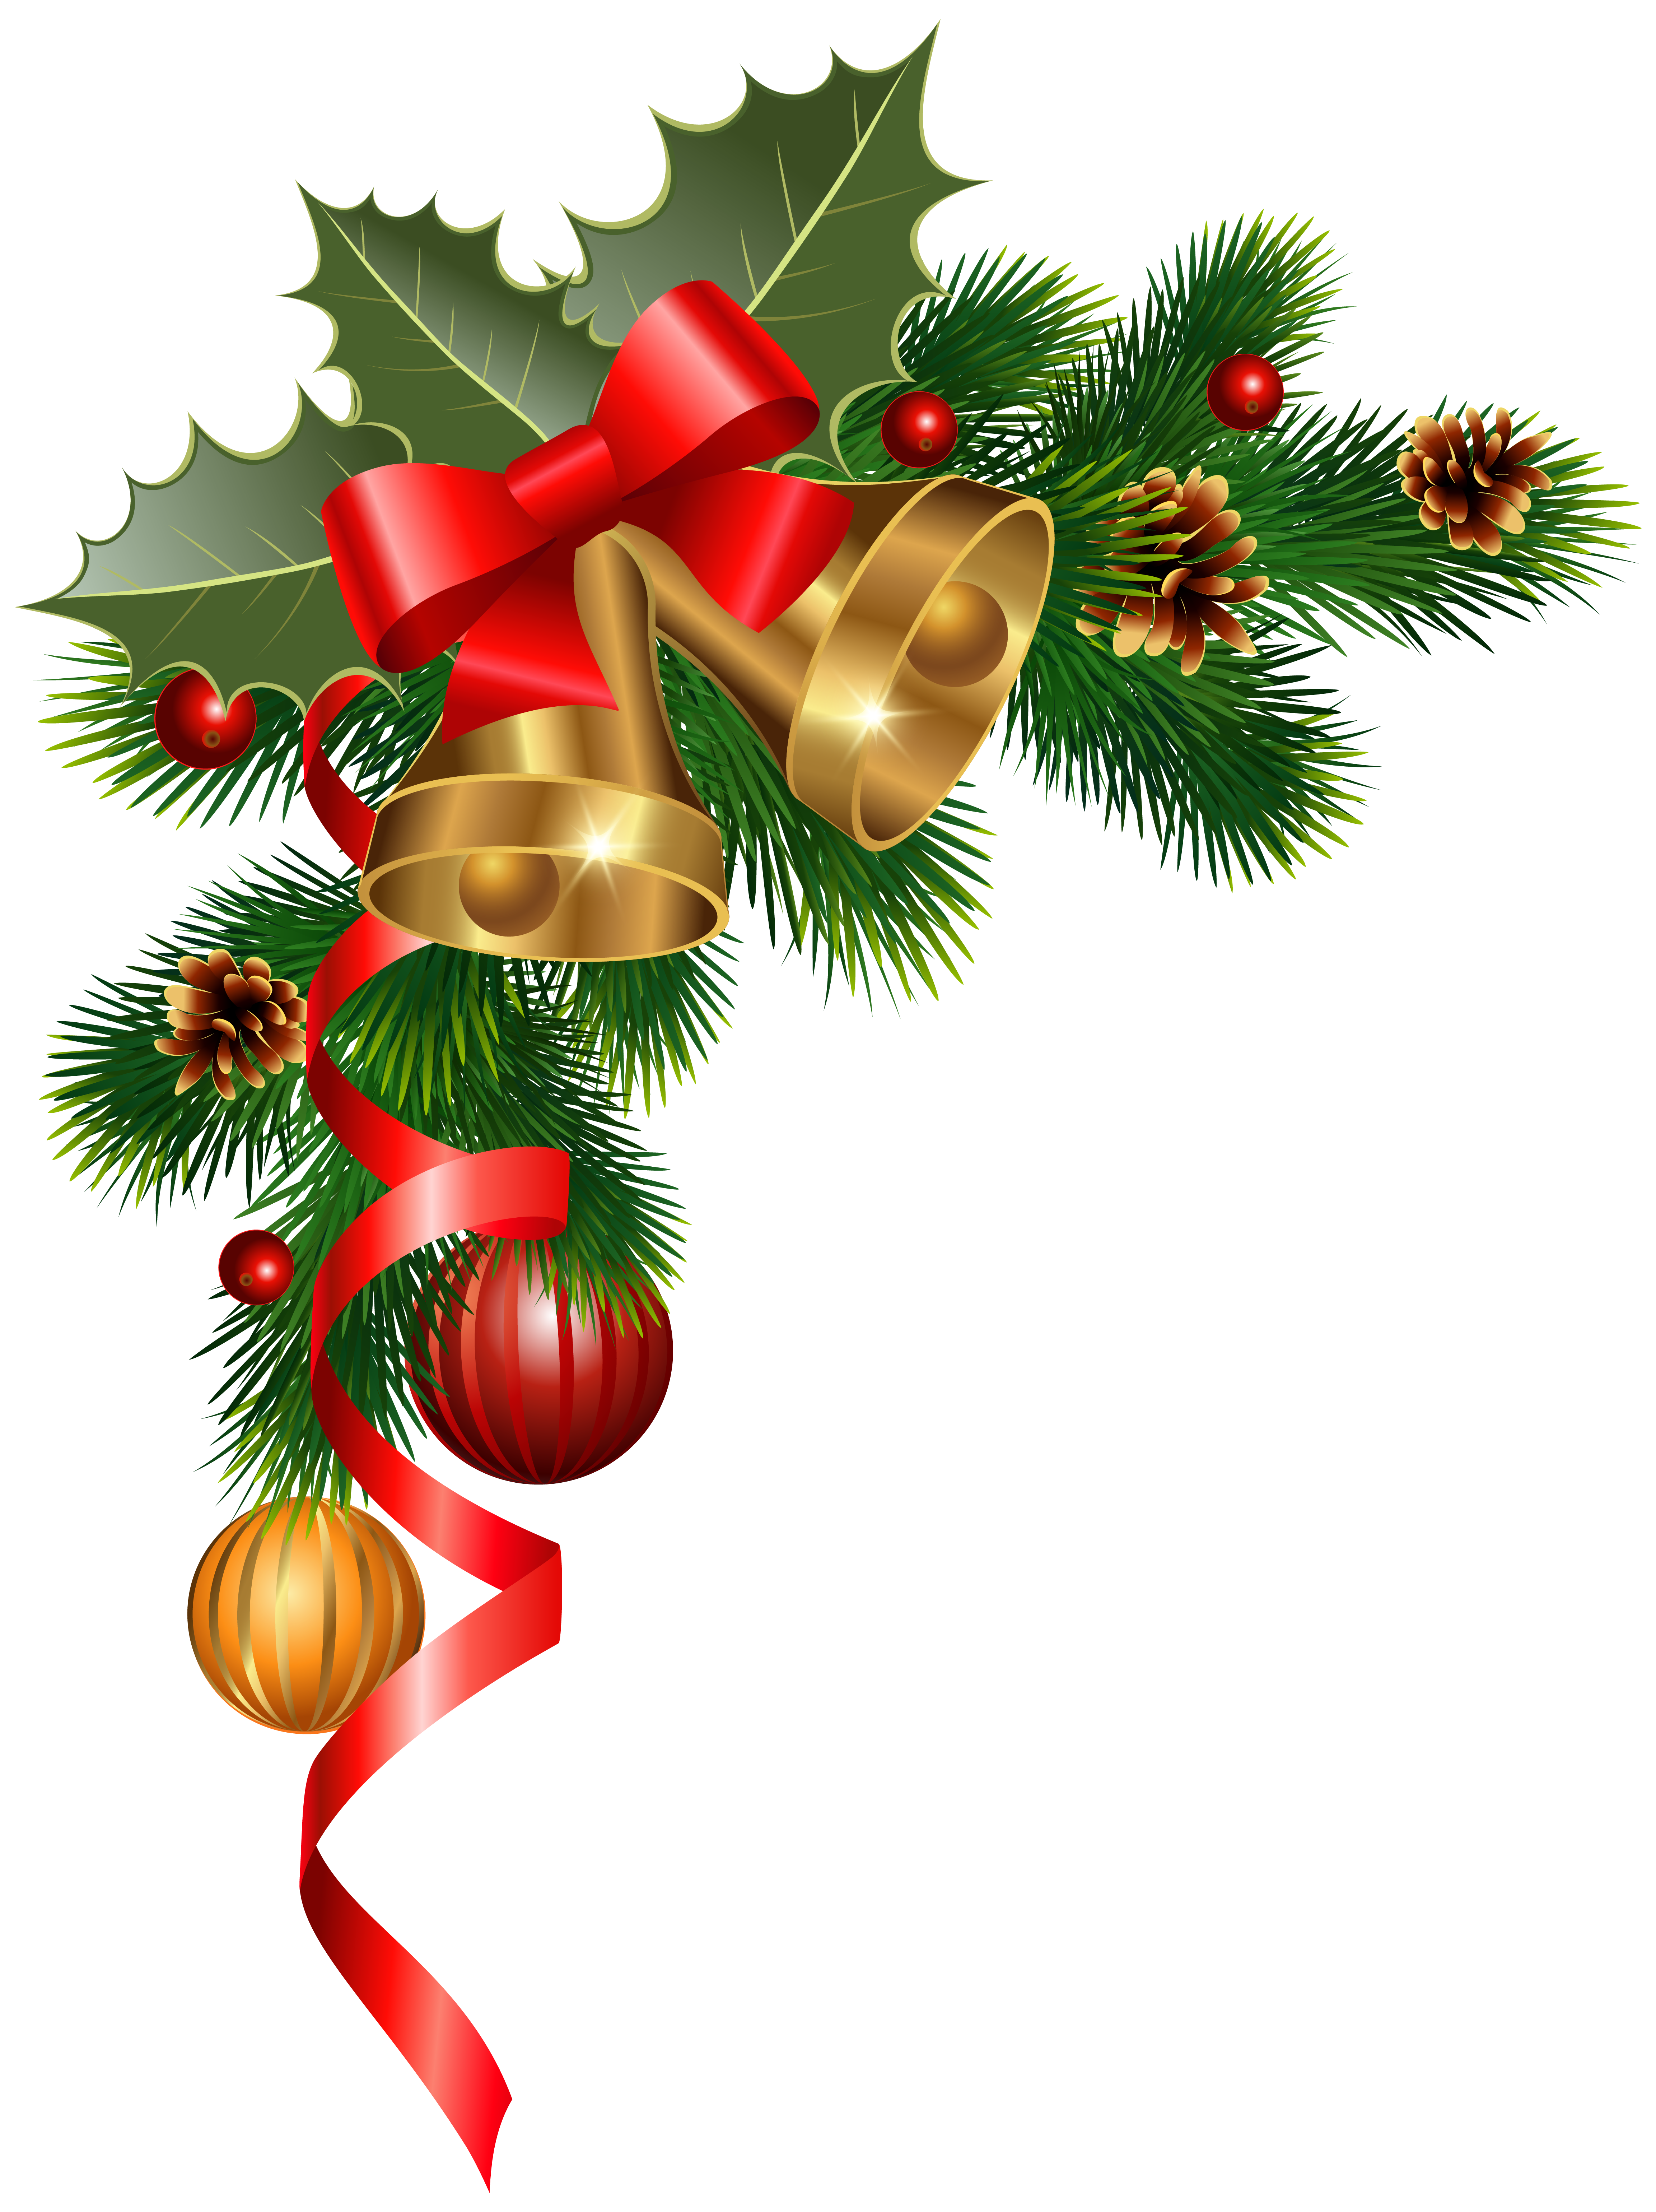 Christmas Graphics Transparent.Pin By Vijay Daniel On Thumbnail Sketch Christmas Xmas